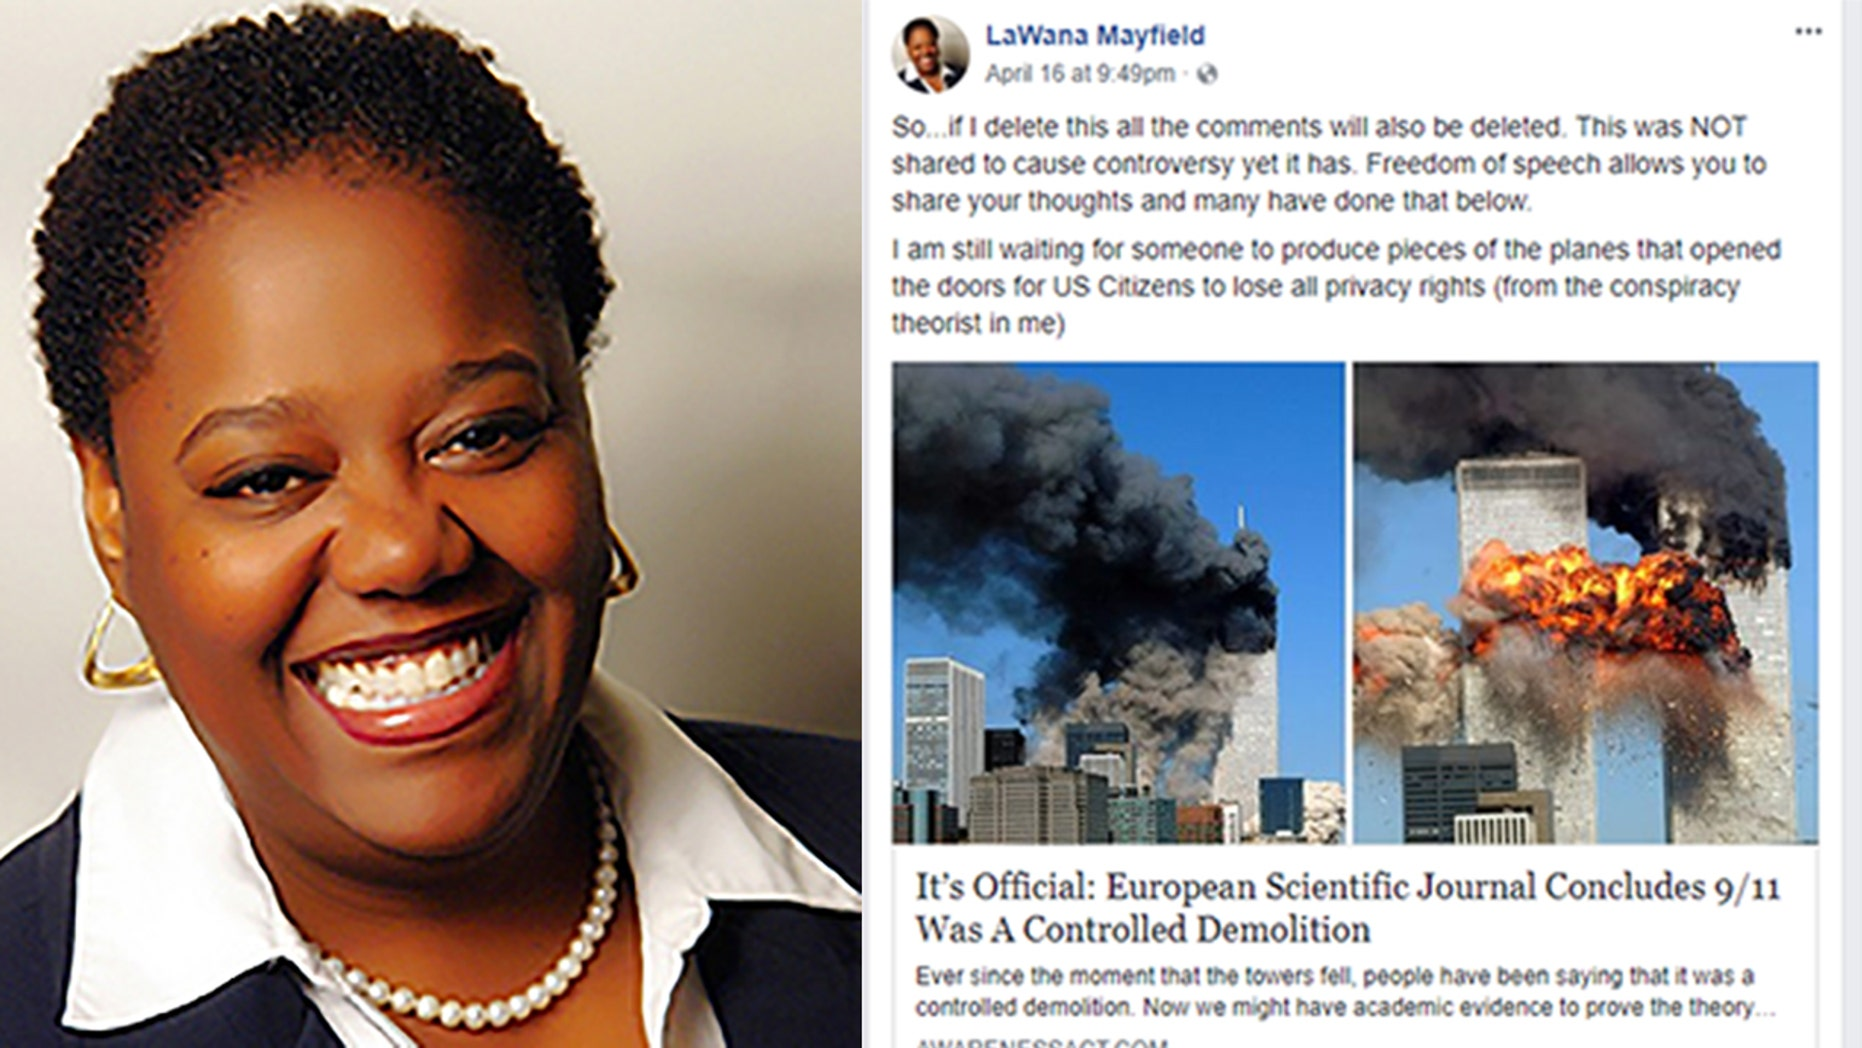 North Carolina City Council woman LaWana Mayfield sparked backlash after she posted a 9/11 conspiracy story on her Facebook page.